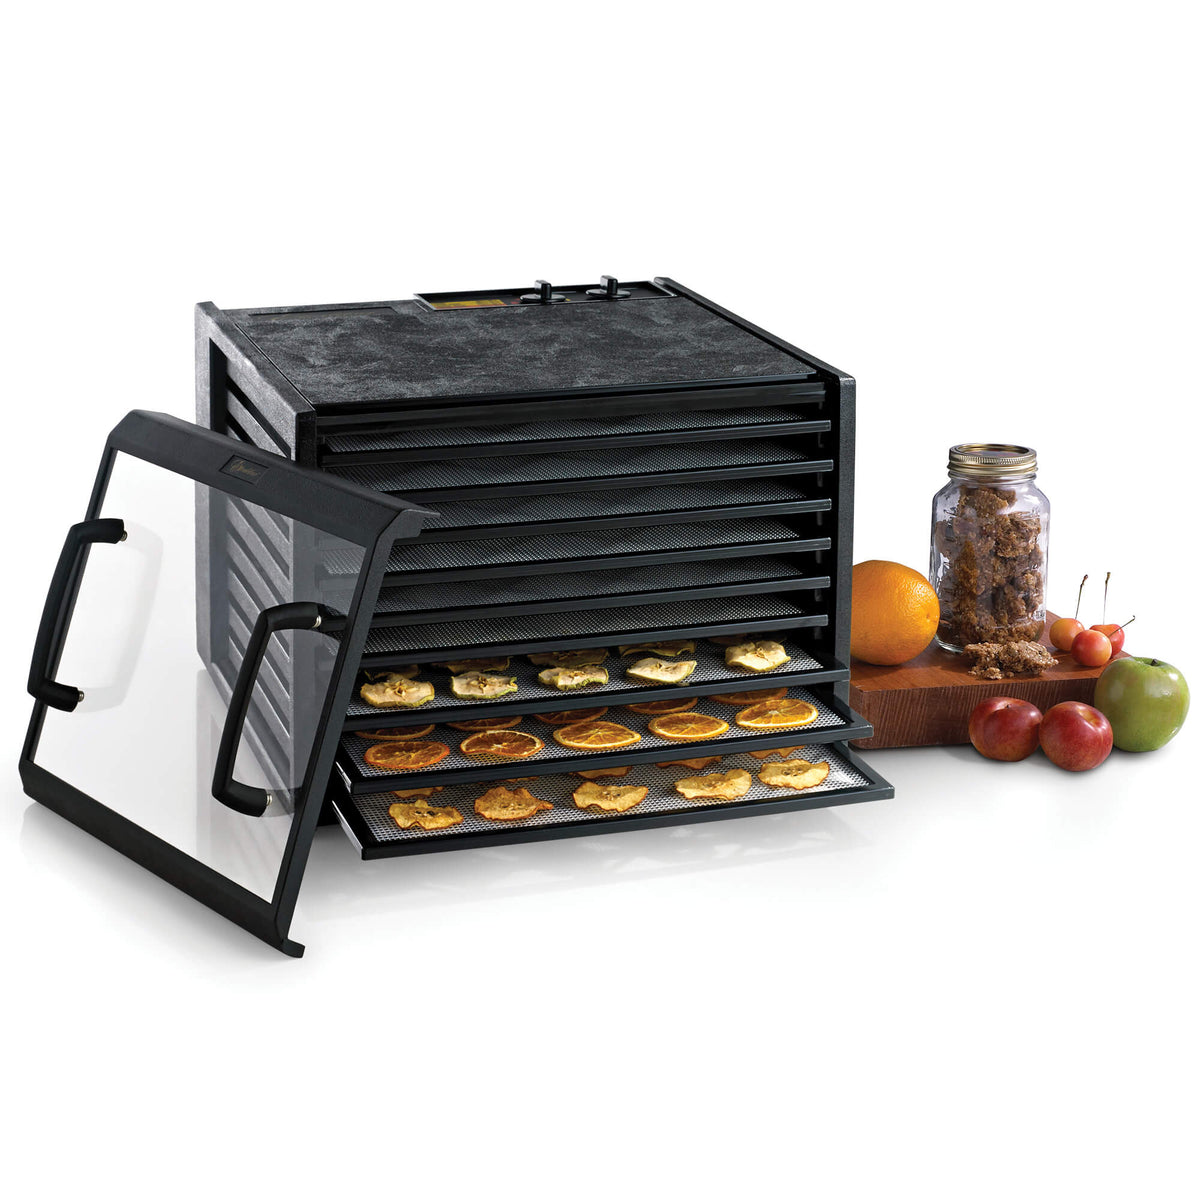 Excalibur 4926TCDB 9 tray dehydrator with clear door propped to the side and food on the trays.